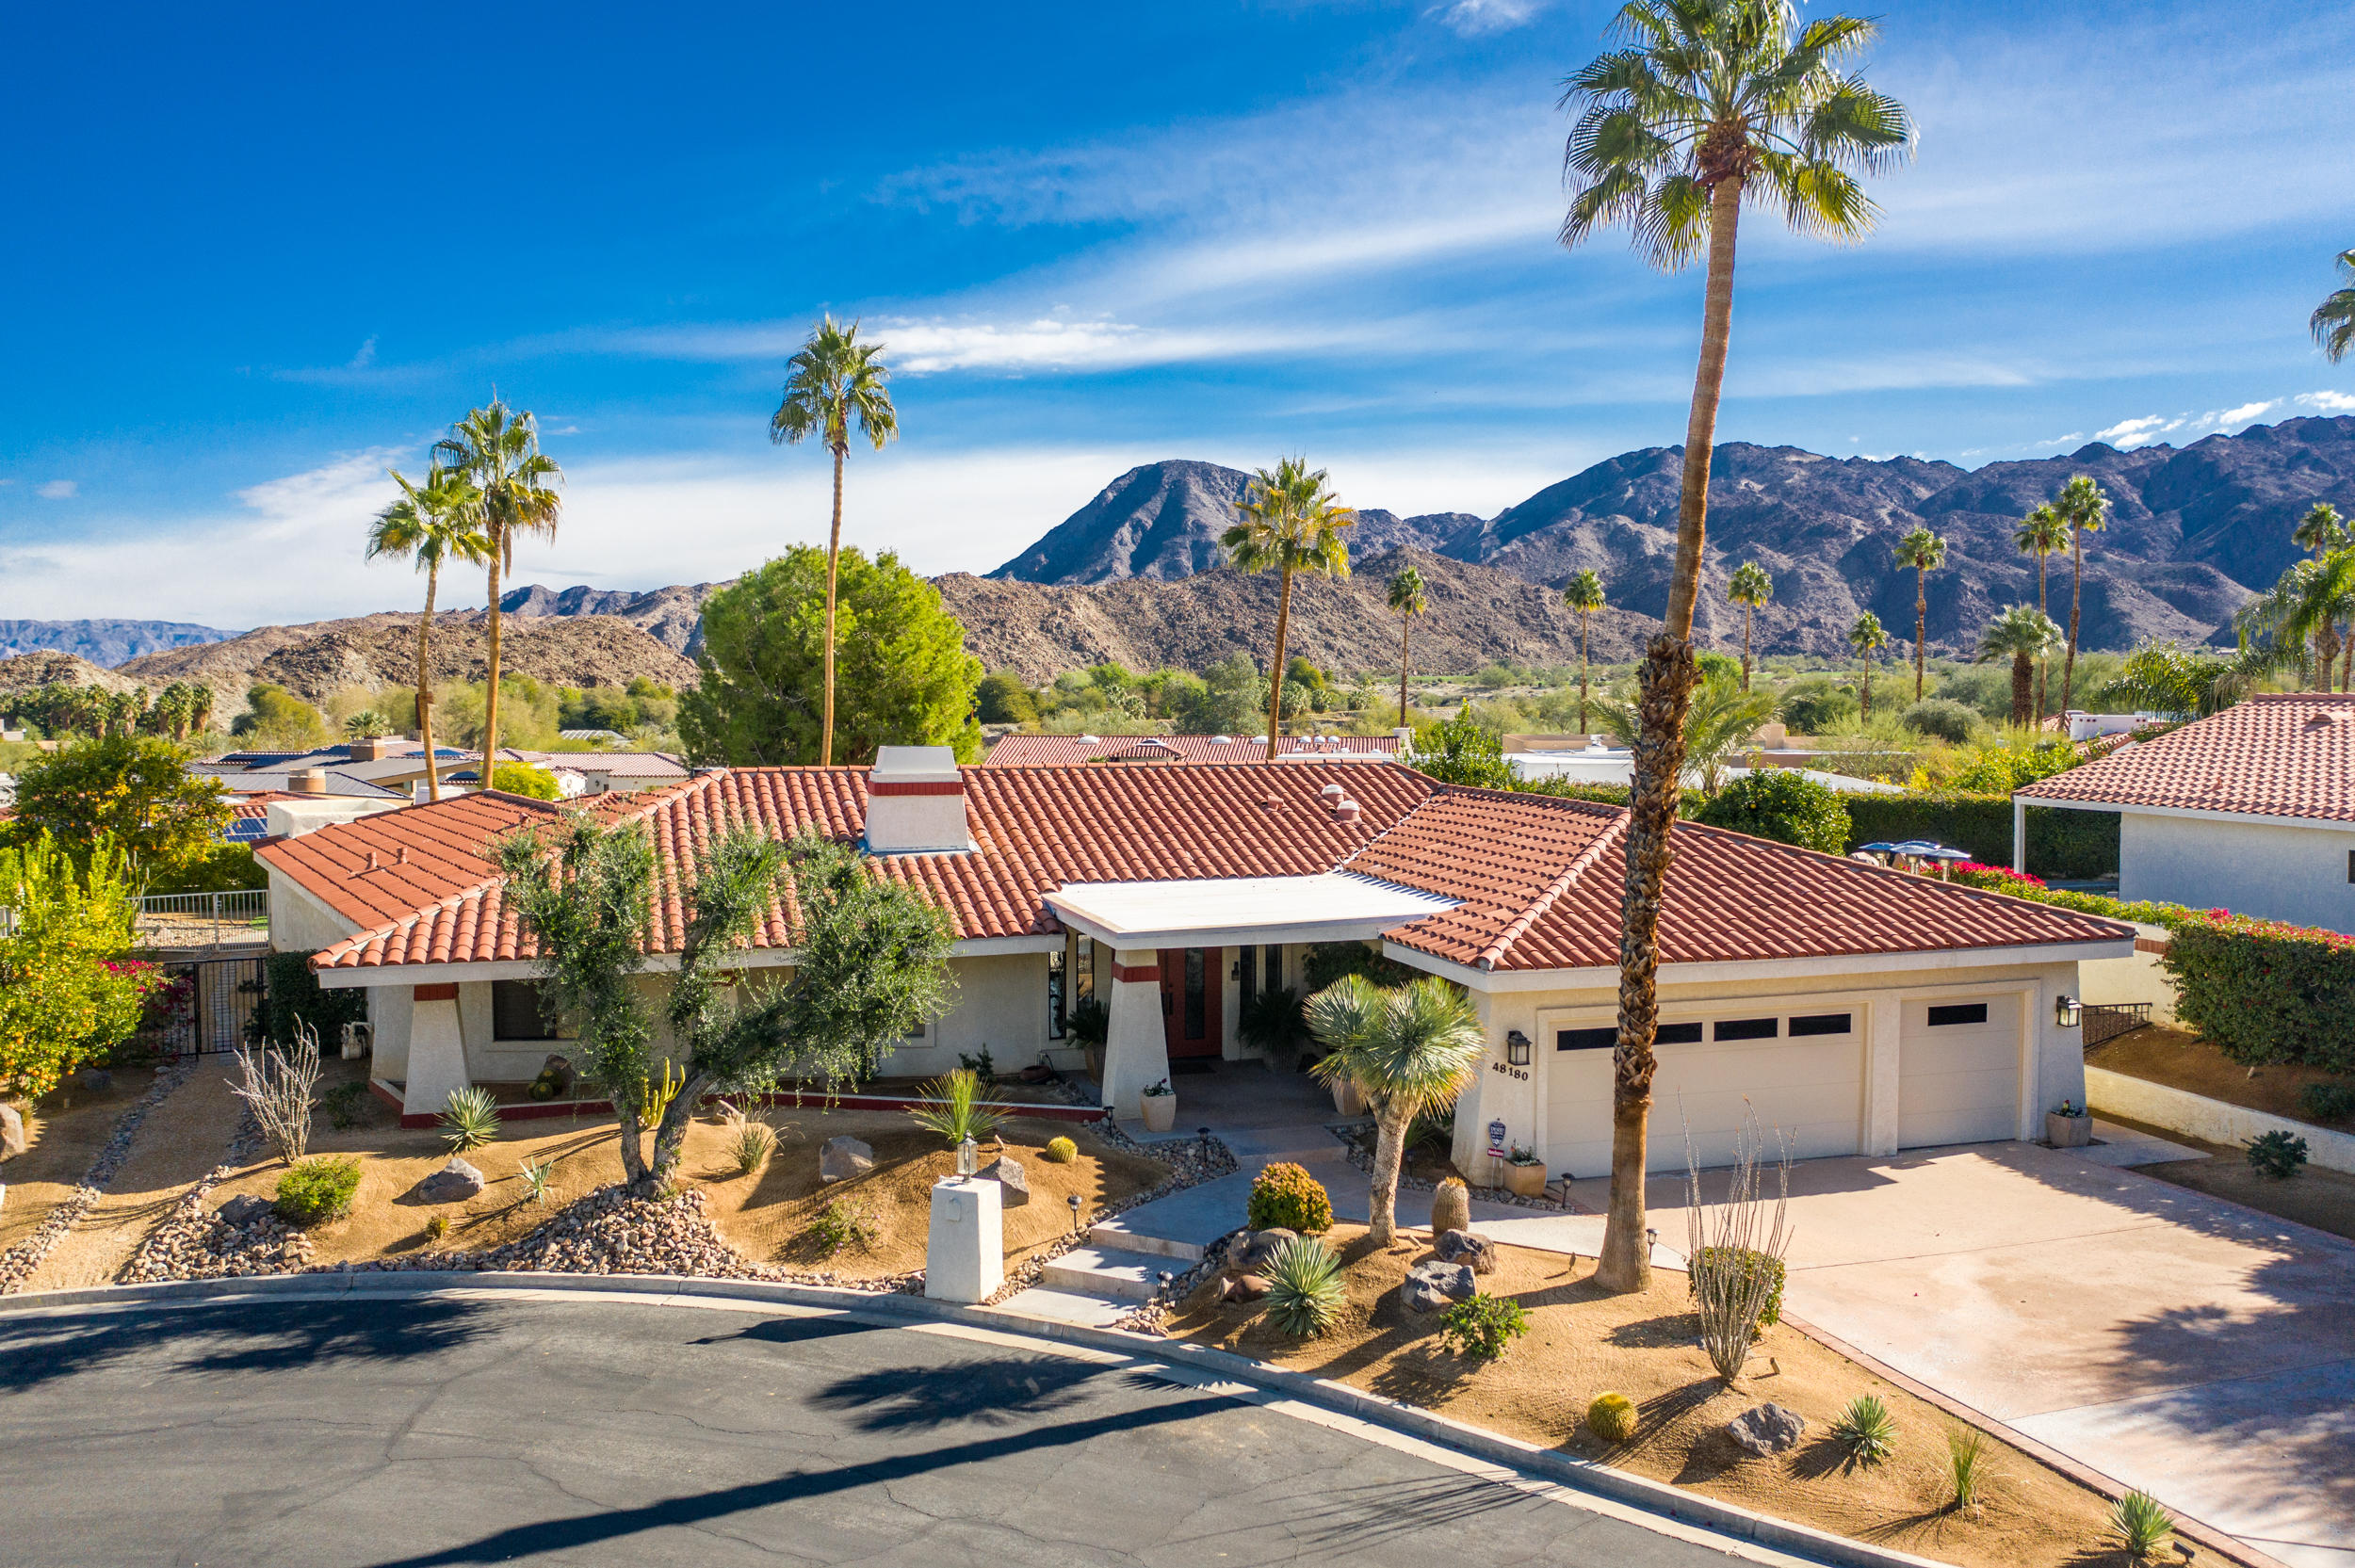 48180 Alder Lane, Palm Desert, California 92260, 3 Bedrooms Bedrooms, ,4 BathroomsBathrooms,Residential,For Sale,48180 Alder Lane,219036363